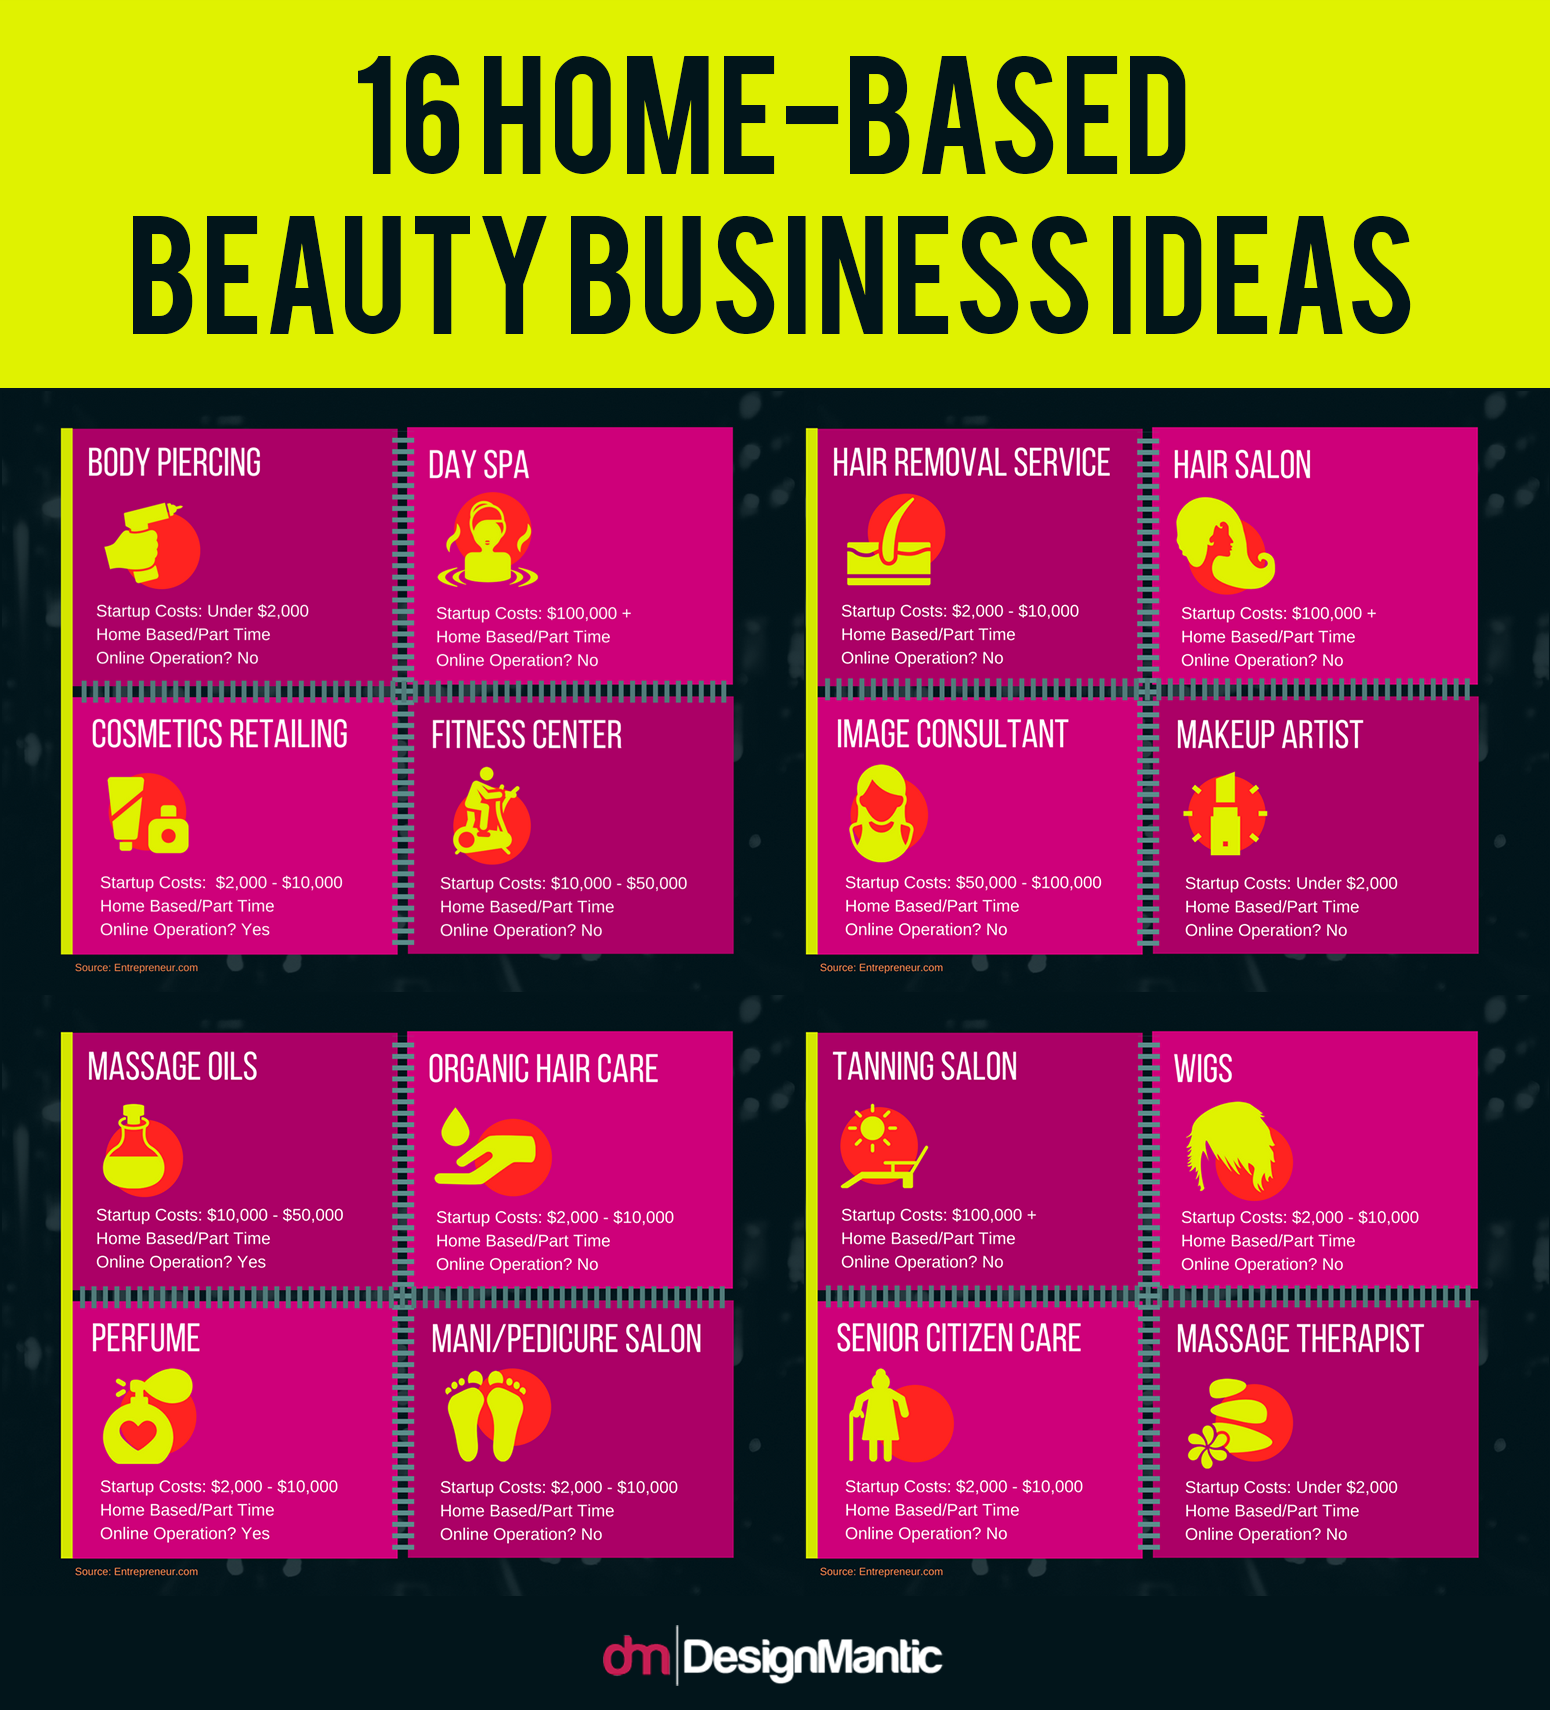 16 Home-Based Beauty Business Ideas